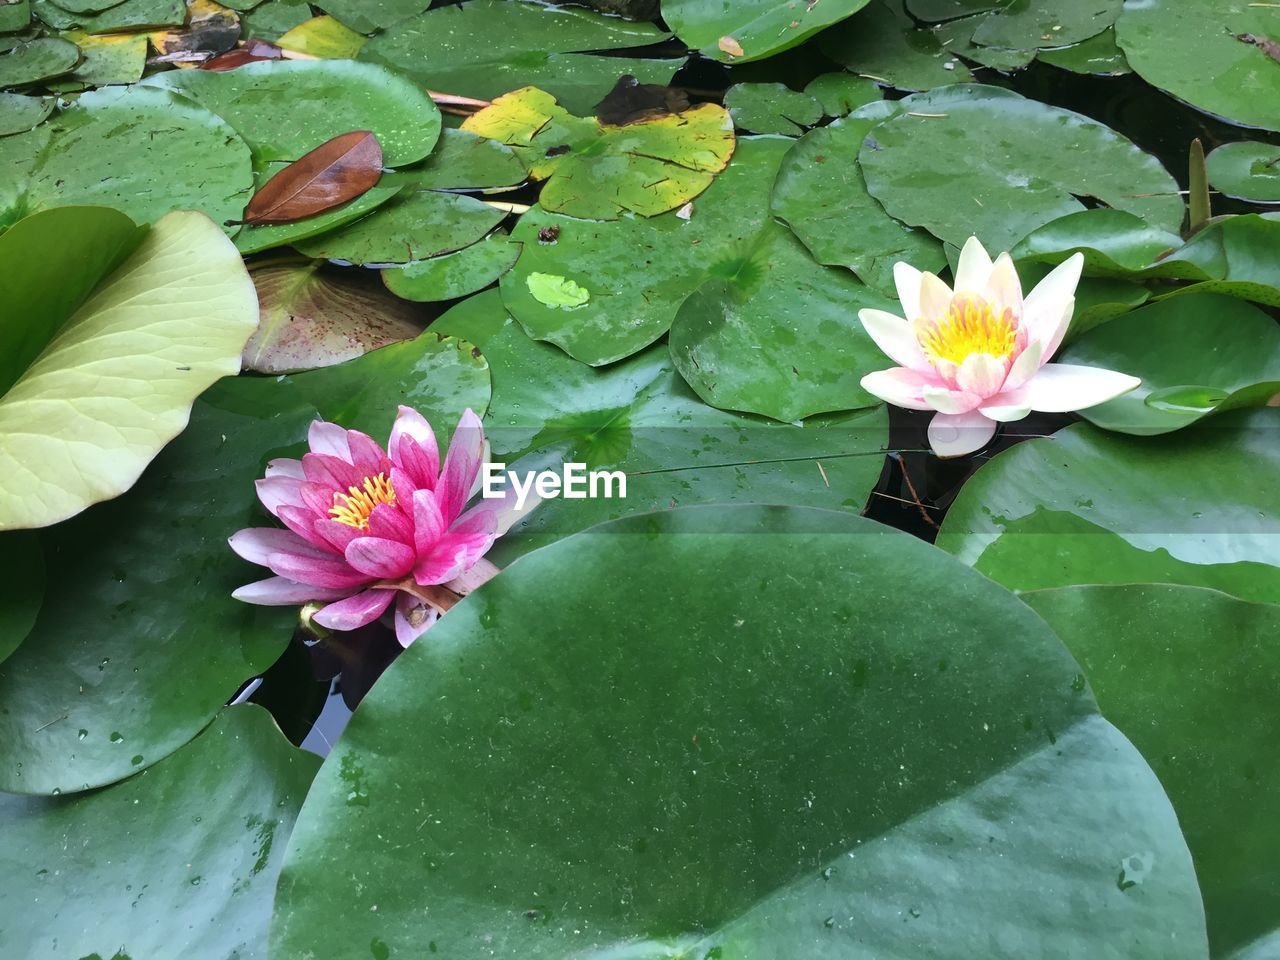 flower, pond, water lily, leaf, growth, beauty in nature, nature, lotus water lily, petal, fragility, freshness, lily pad, flower head, floating on water, lotus, plant, water, outdoors, day, pink color, no people, blooming, close-up, green color